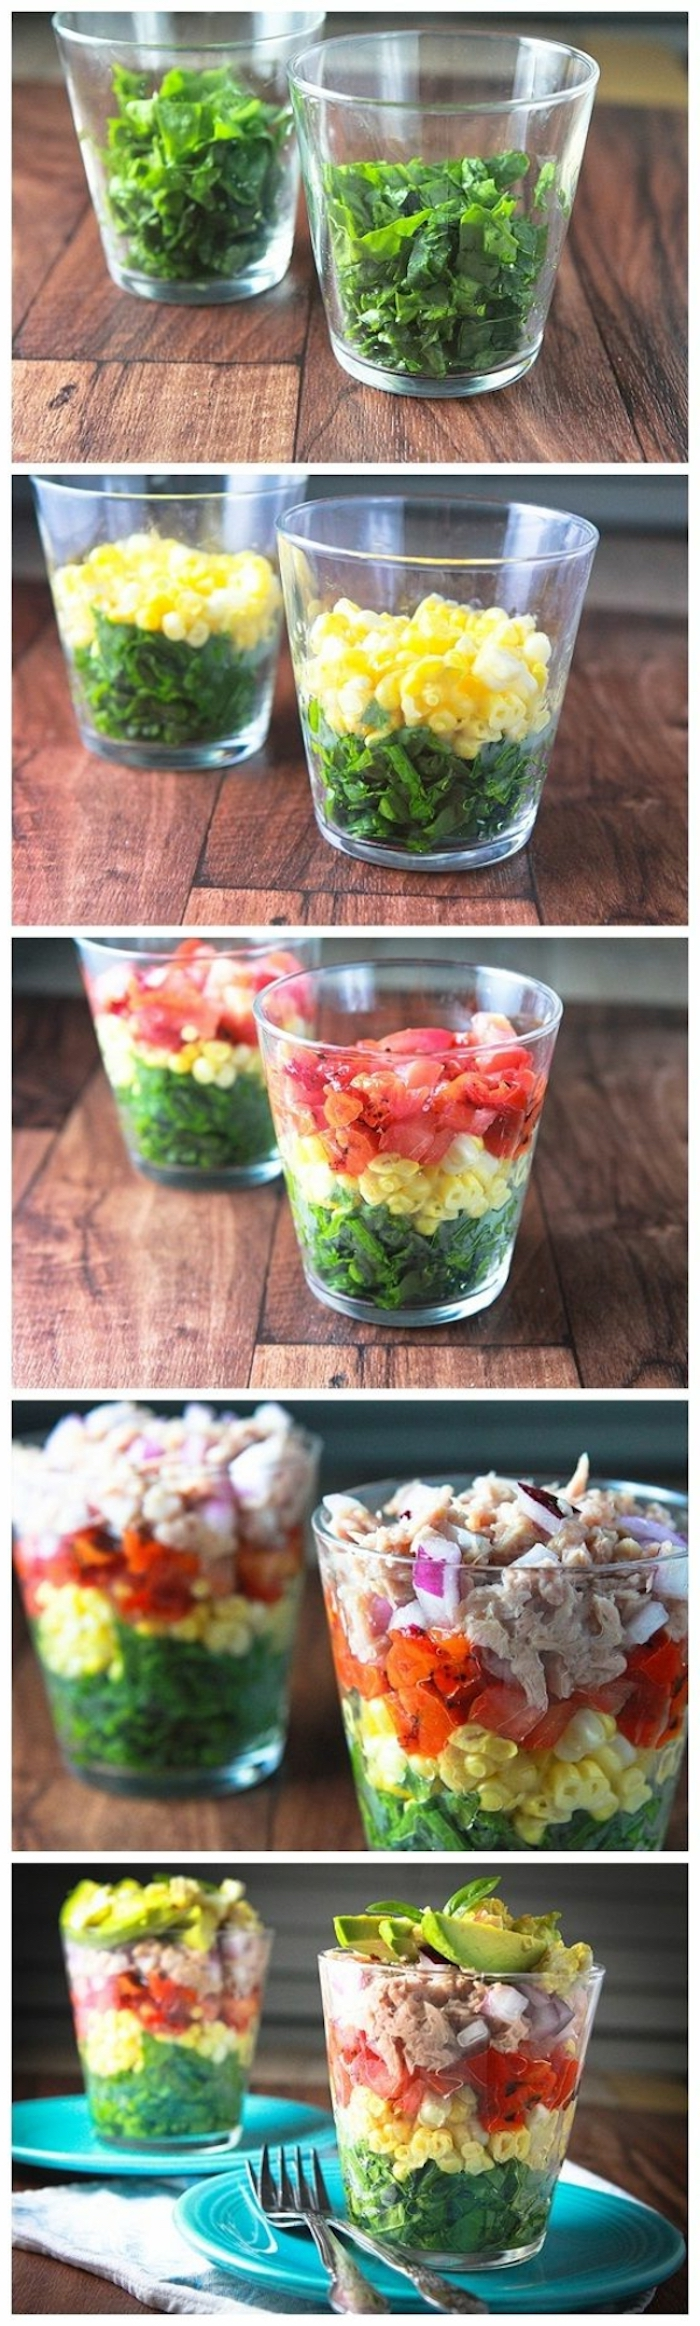 step by step, diy tutorial, green salad, brunch items, corn and tomatoes, meat on top, large glass bowls